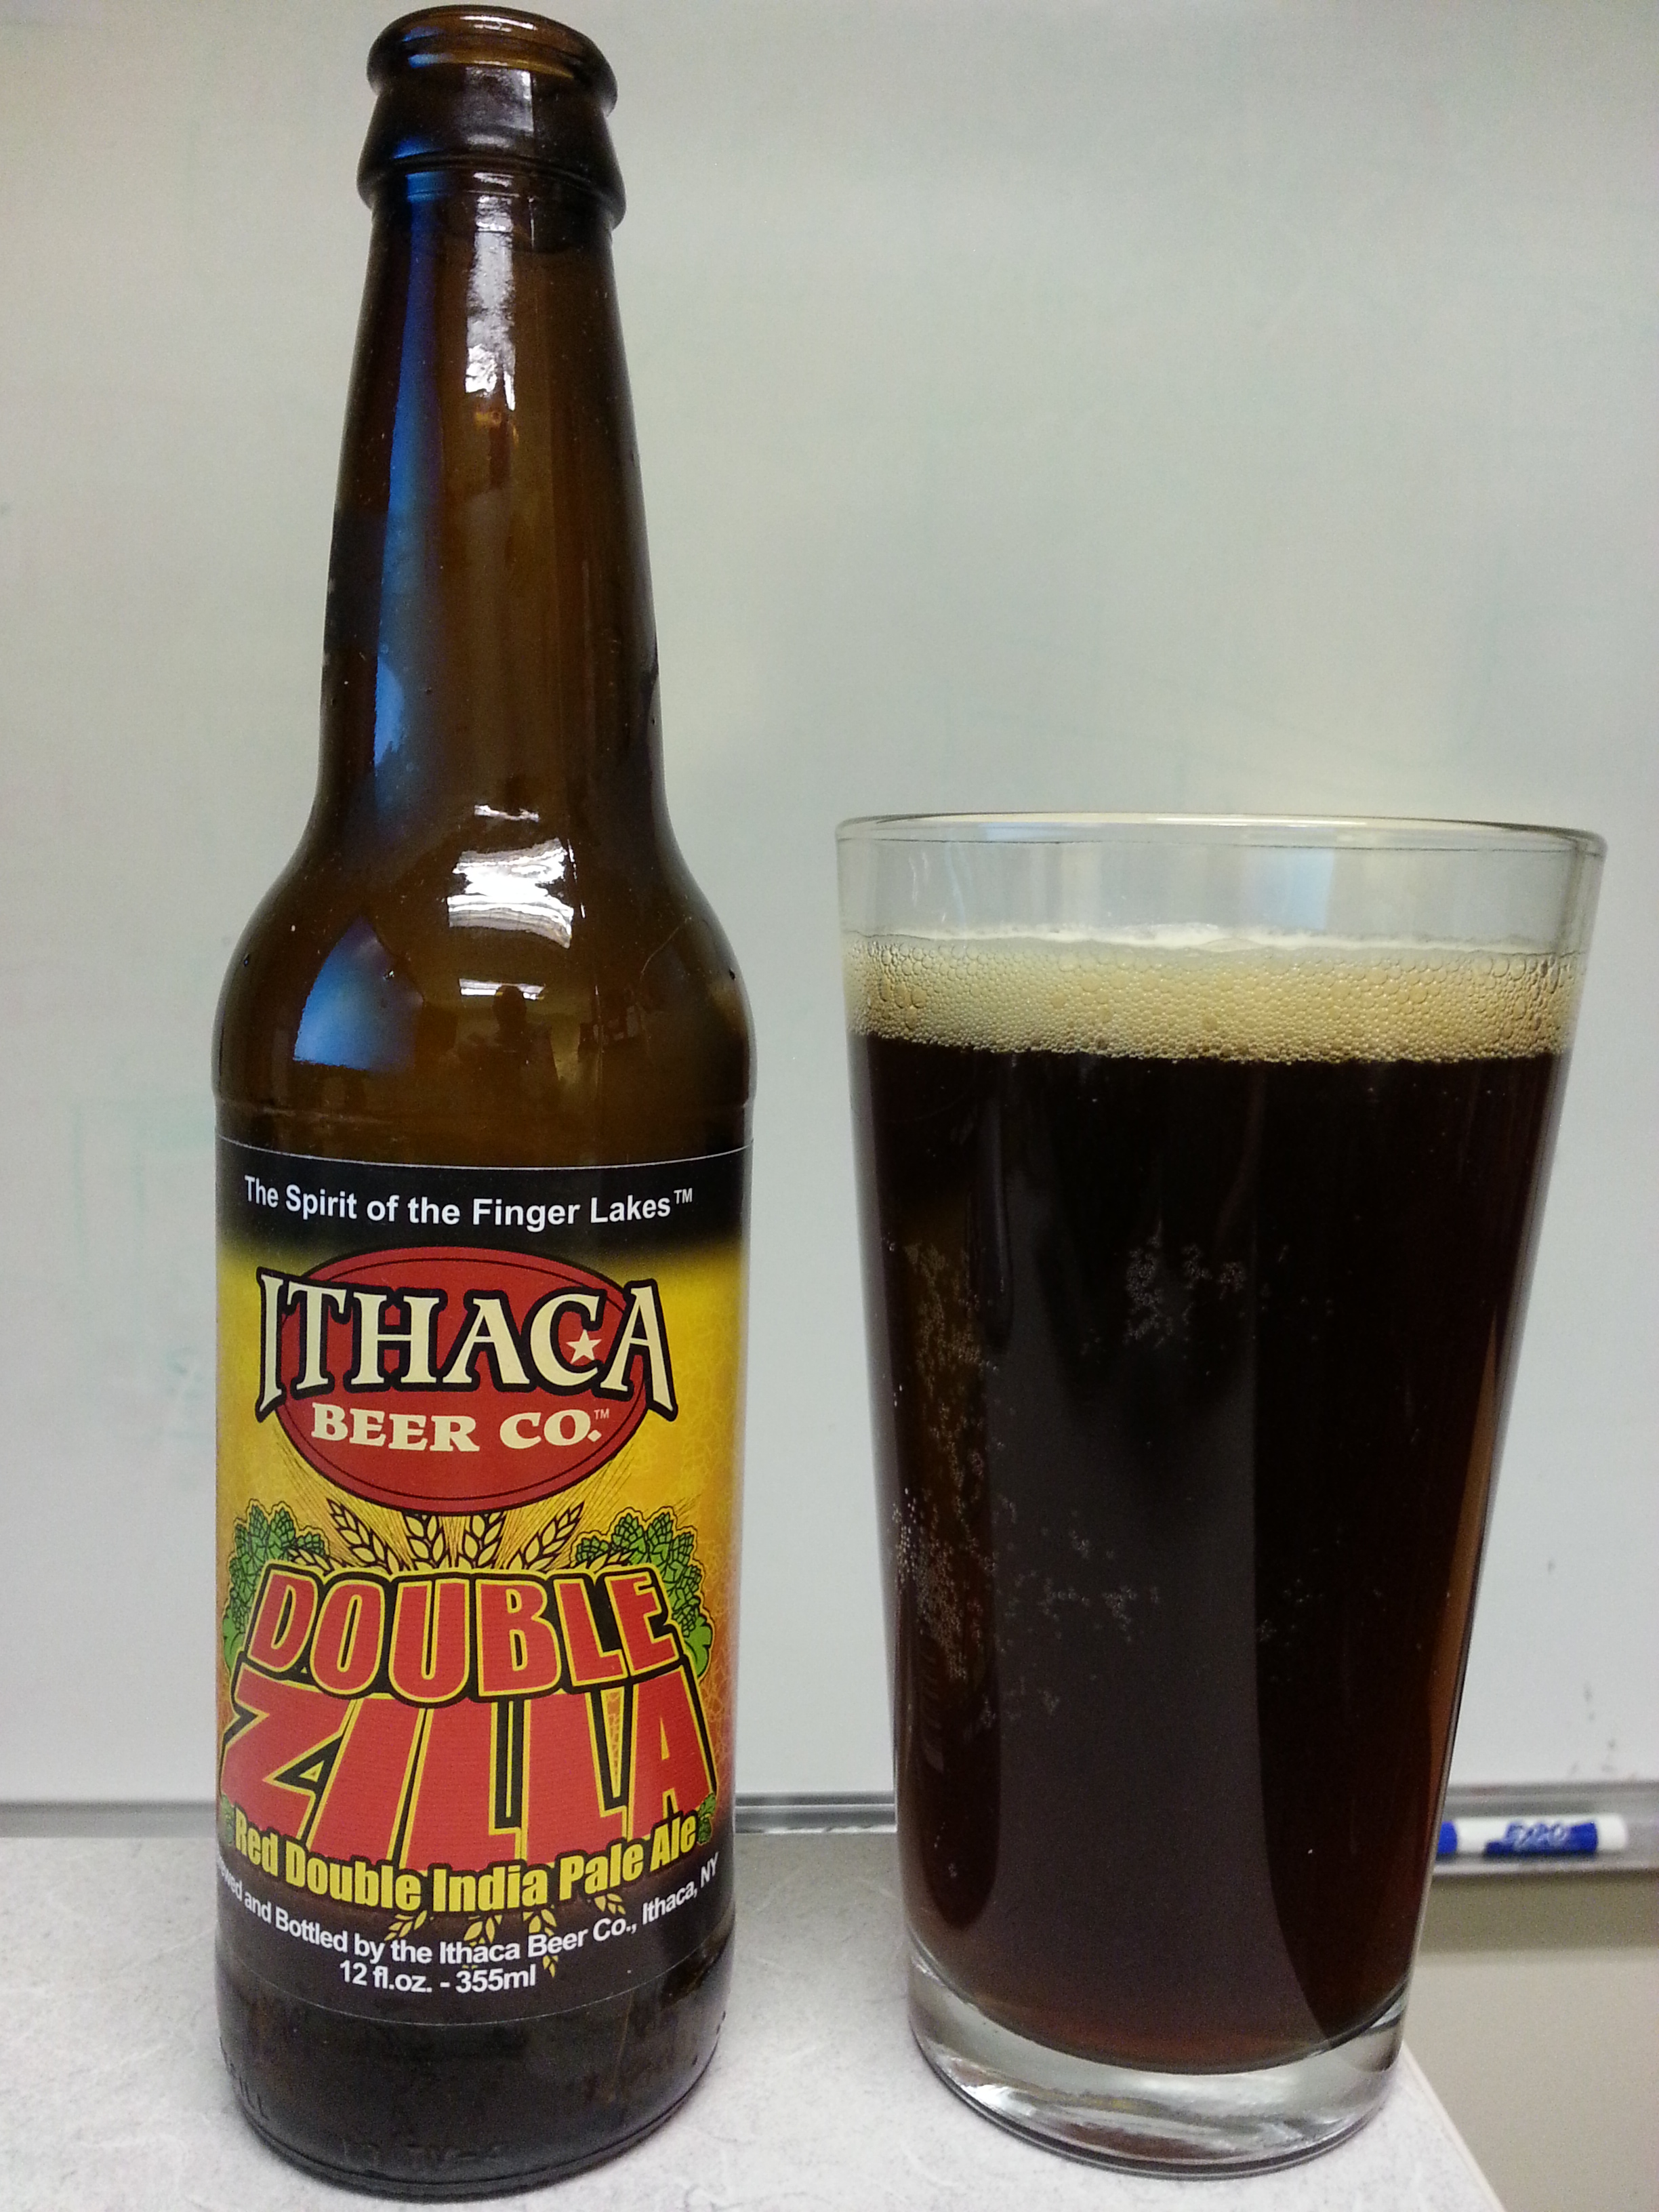 Ithaca Double Zilla Red Double IPA